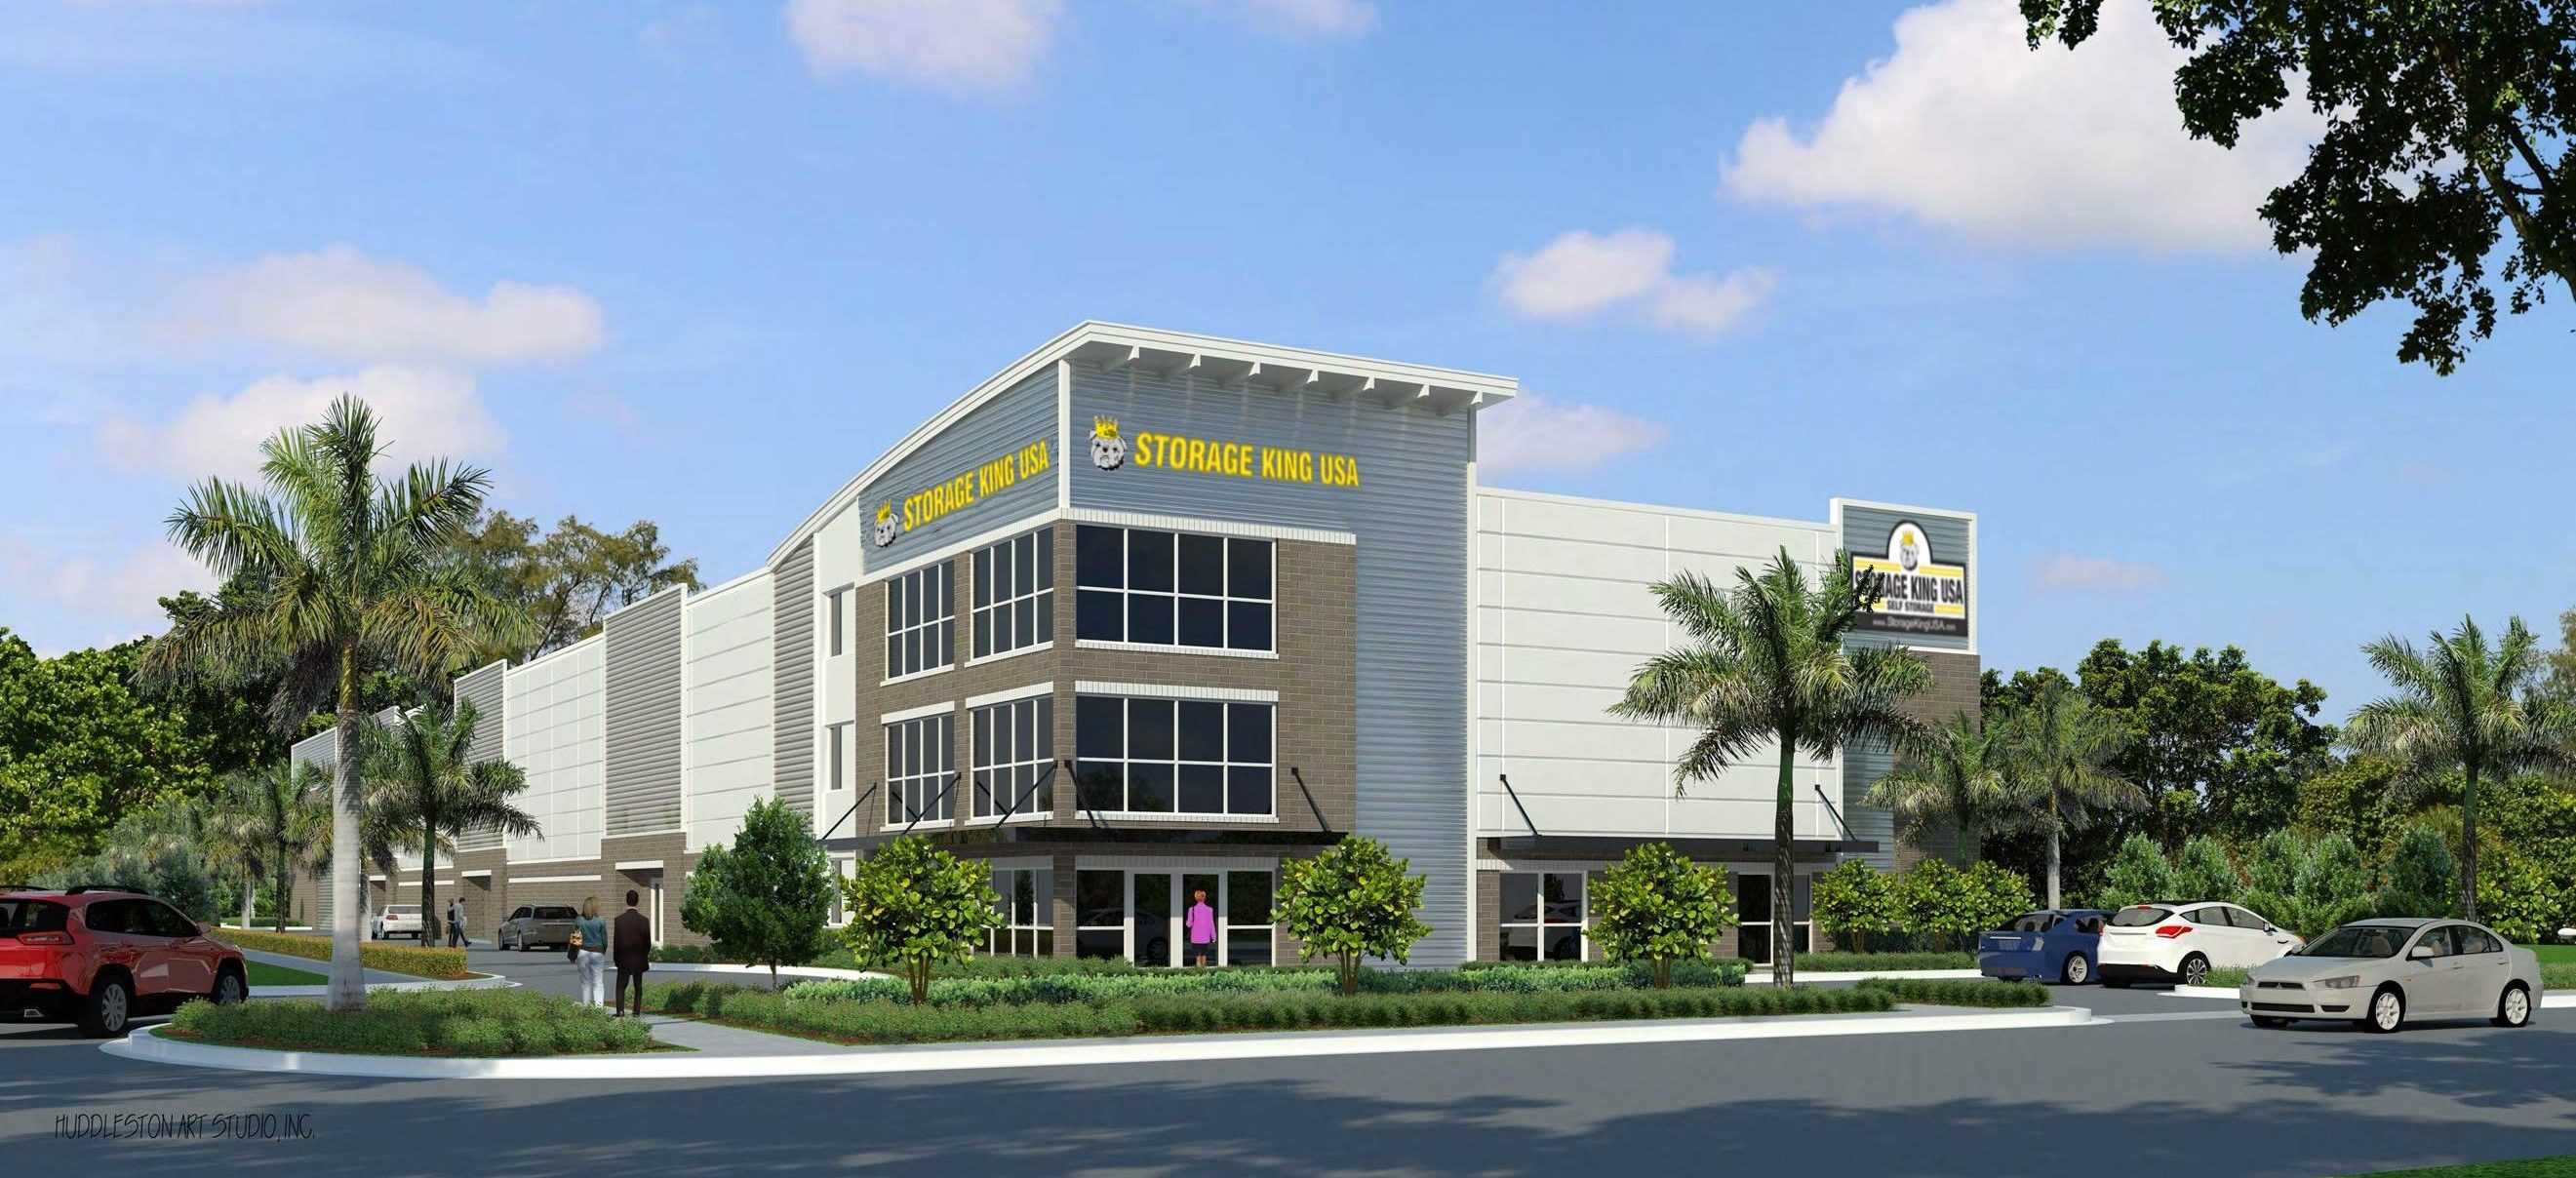 Hollywood, FL – Developing a new, multi-story, 125,000 square foot facility